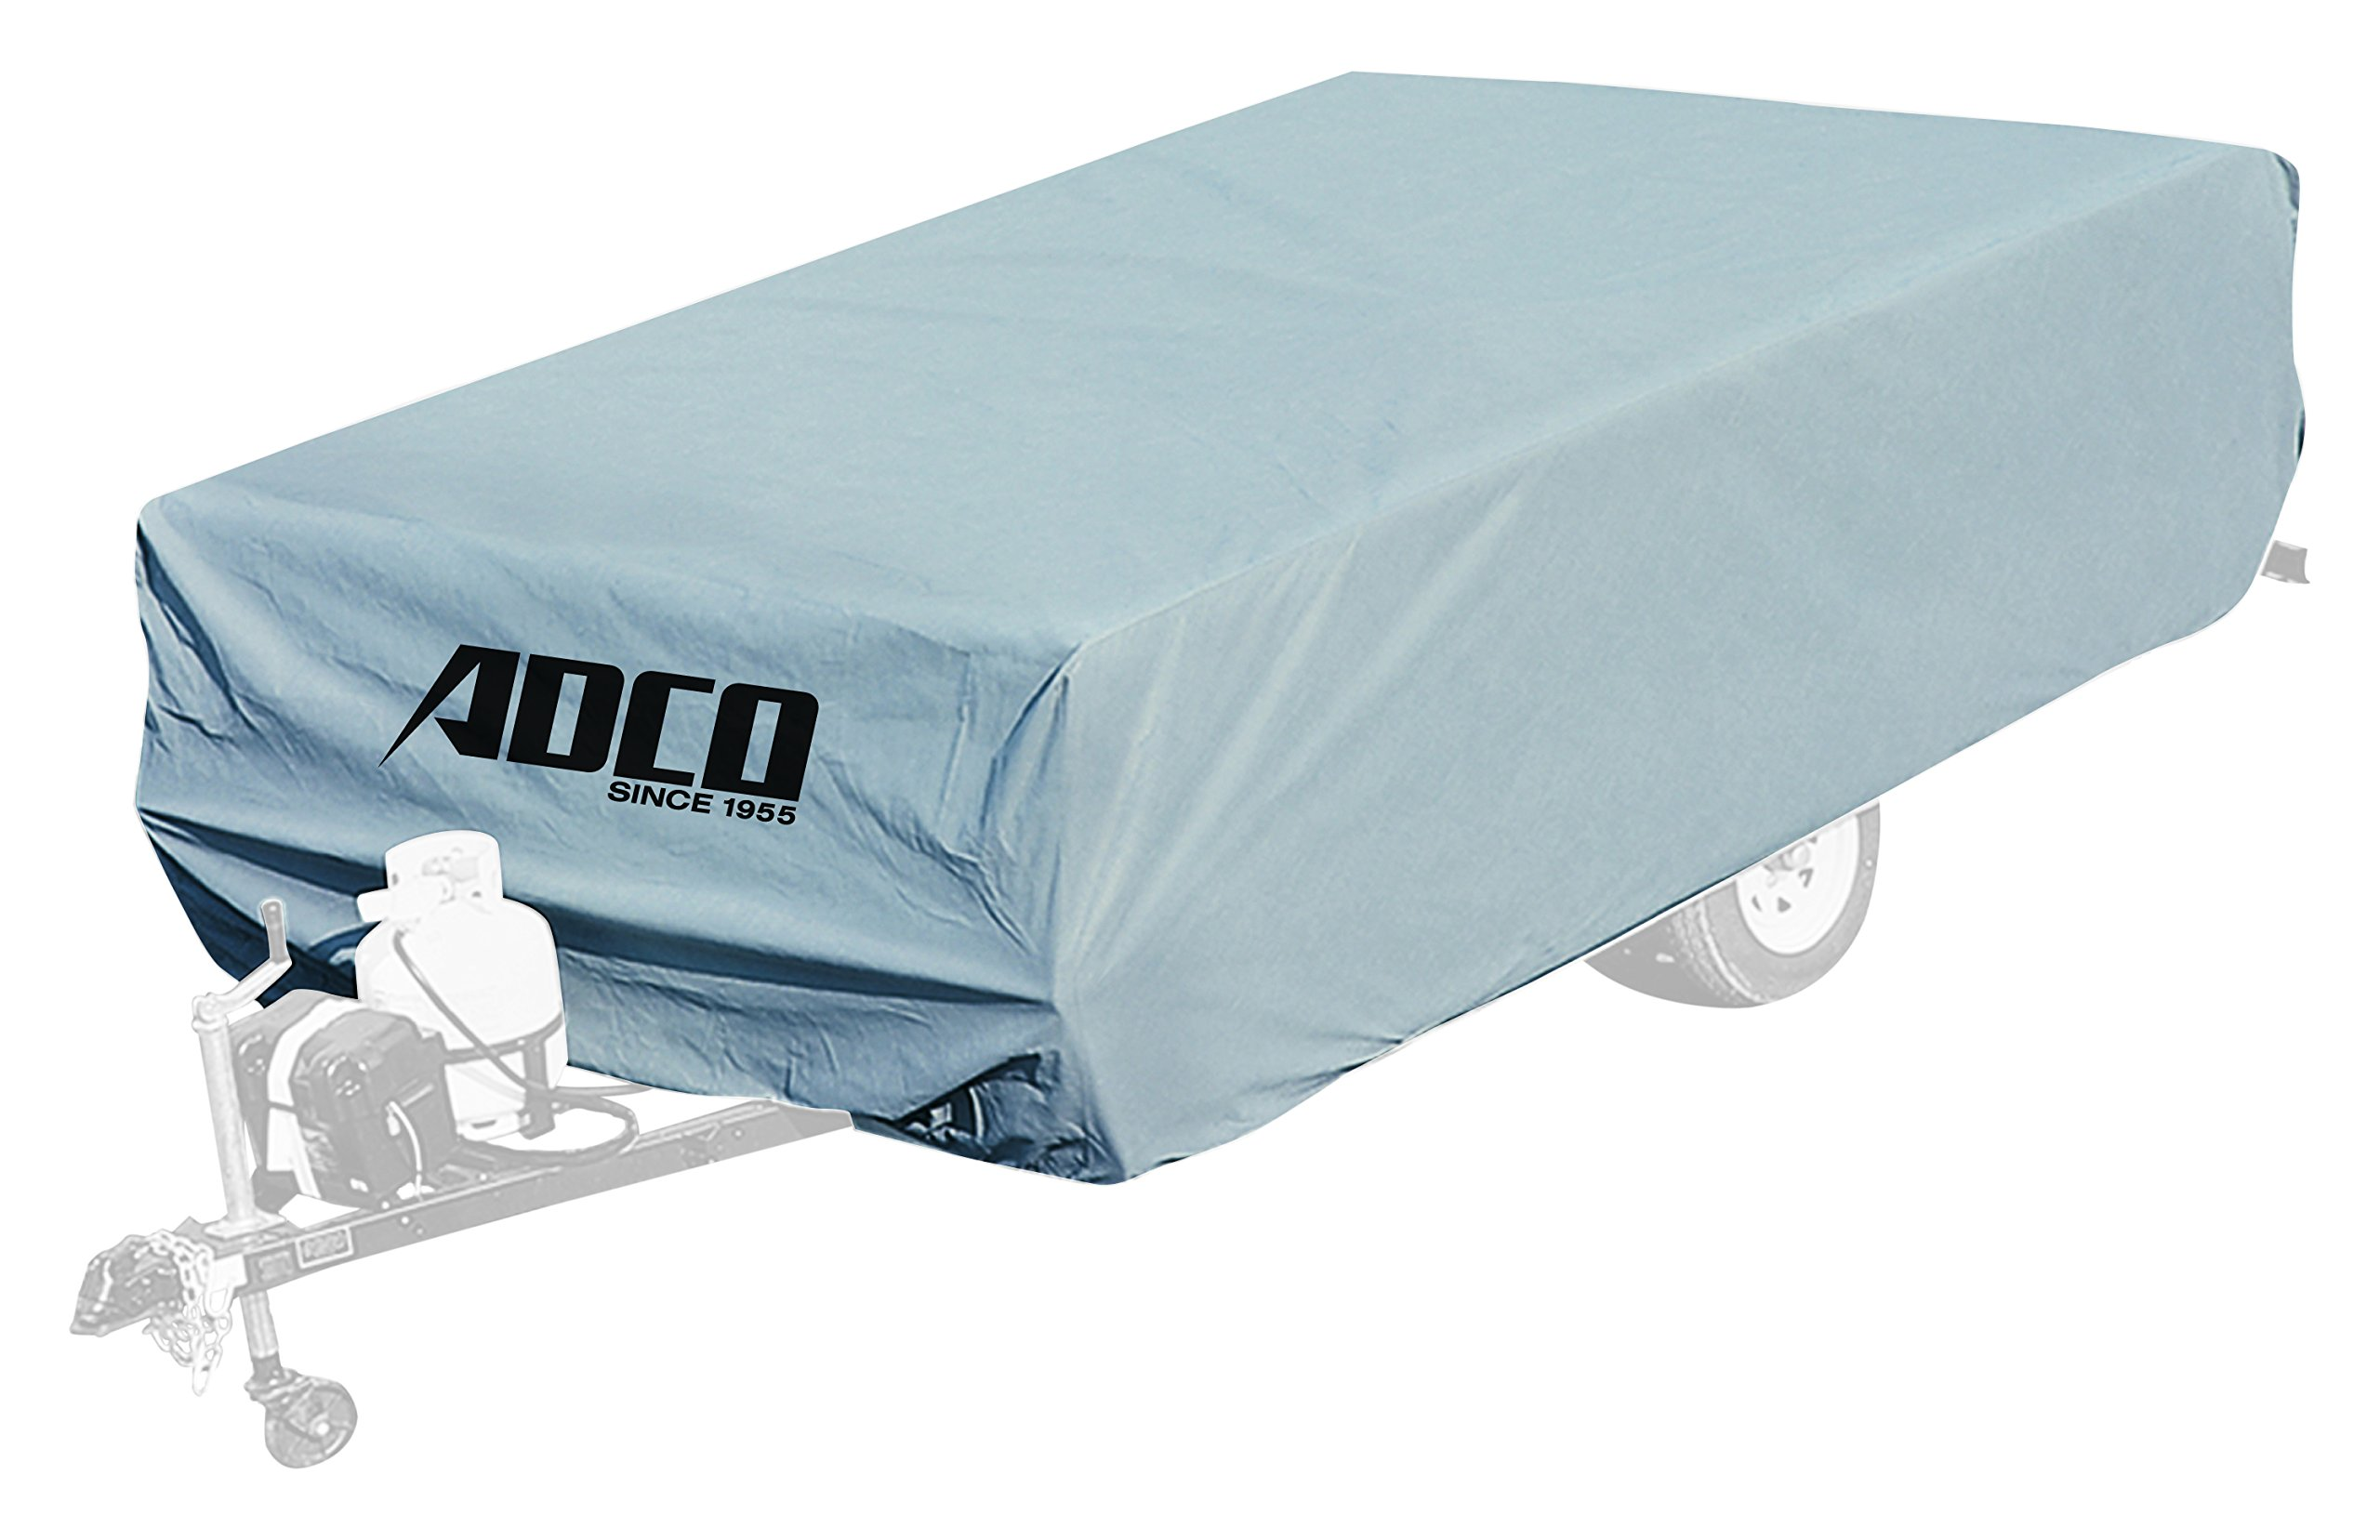 ADCO 2891 Pop Up Folding Trailer Polypropylene Cover, Fits 8'1'' - 10' Trailers, Gray/White by ADCO